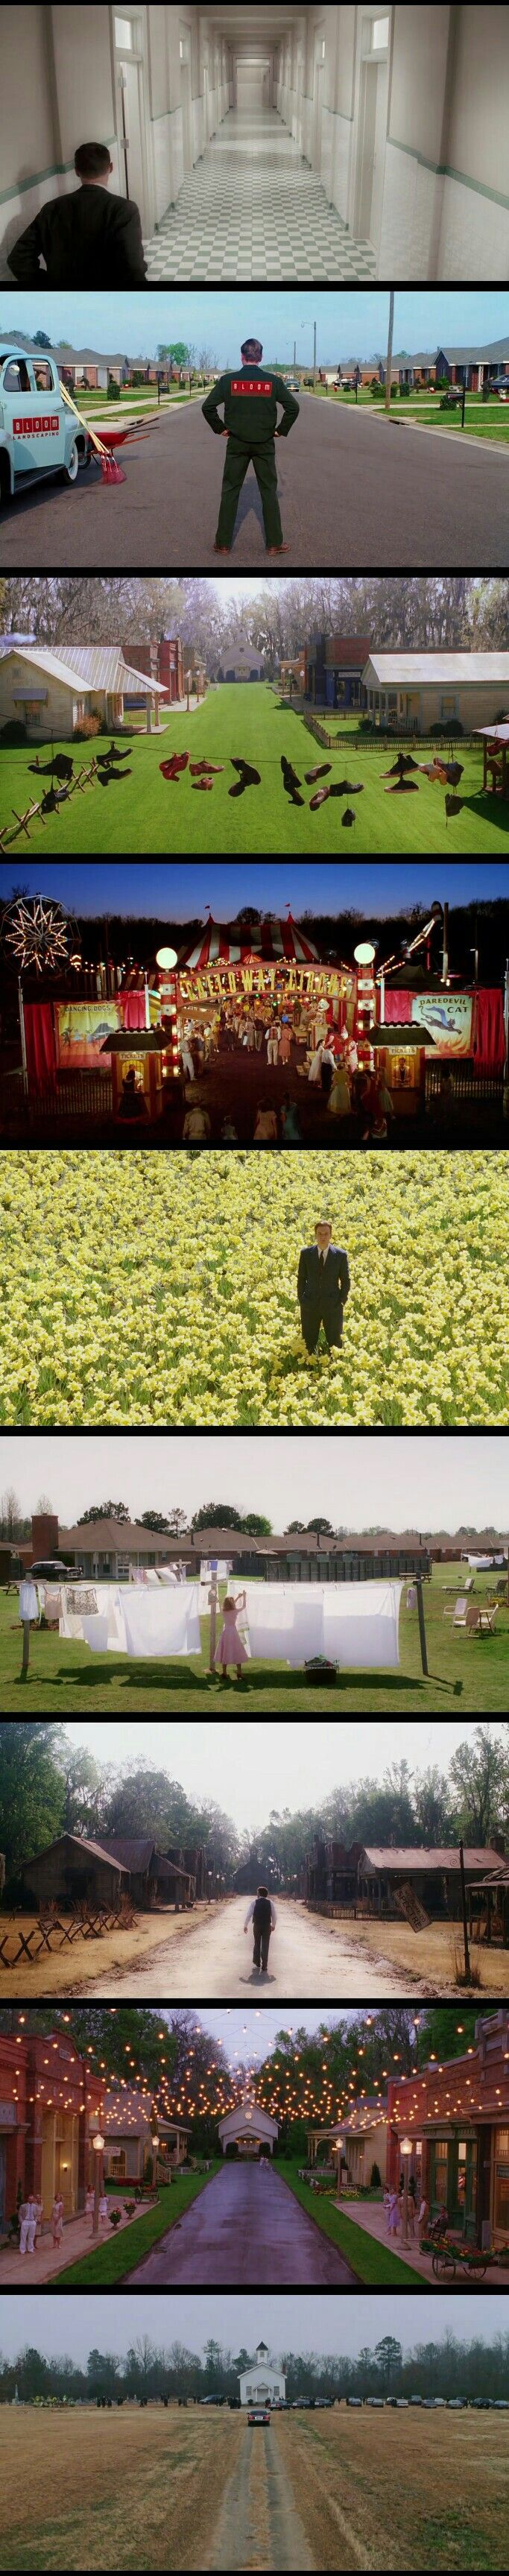 Production Design + Cinematography. Big Fish(2003) Director: Tim Burton.